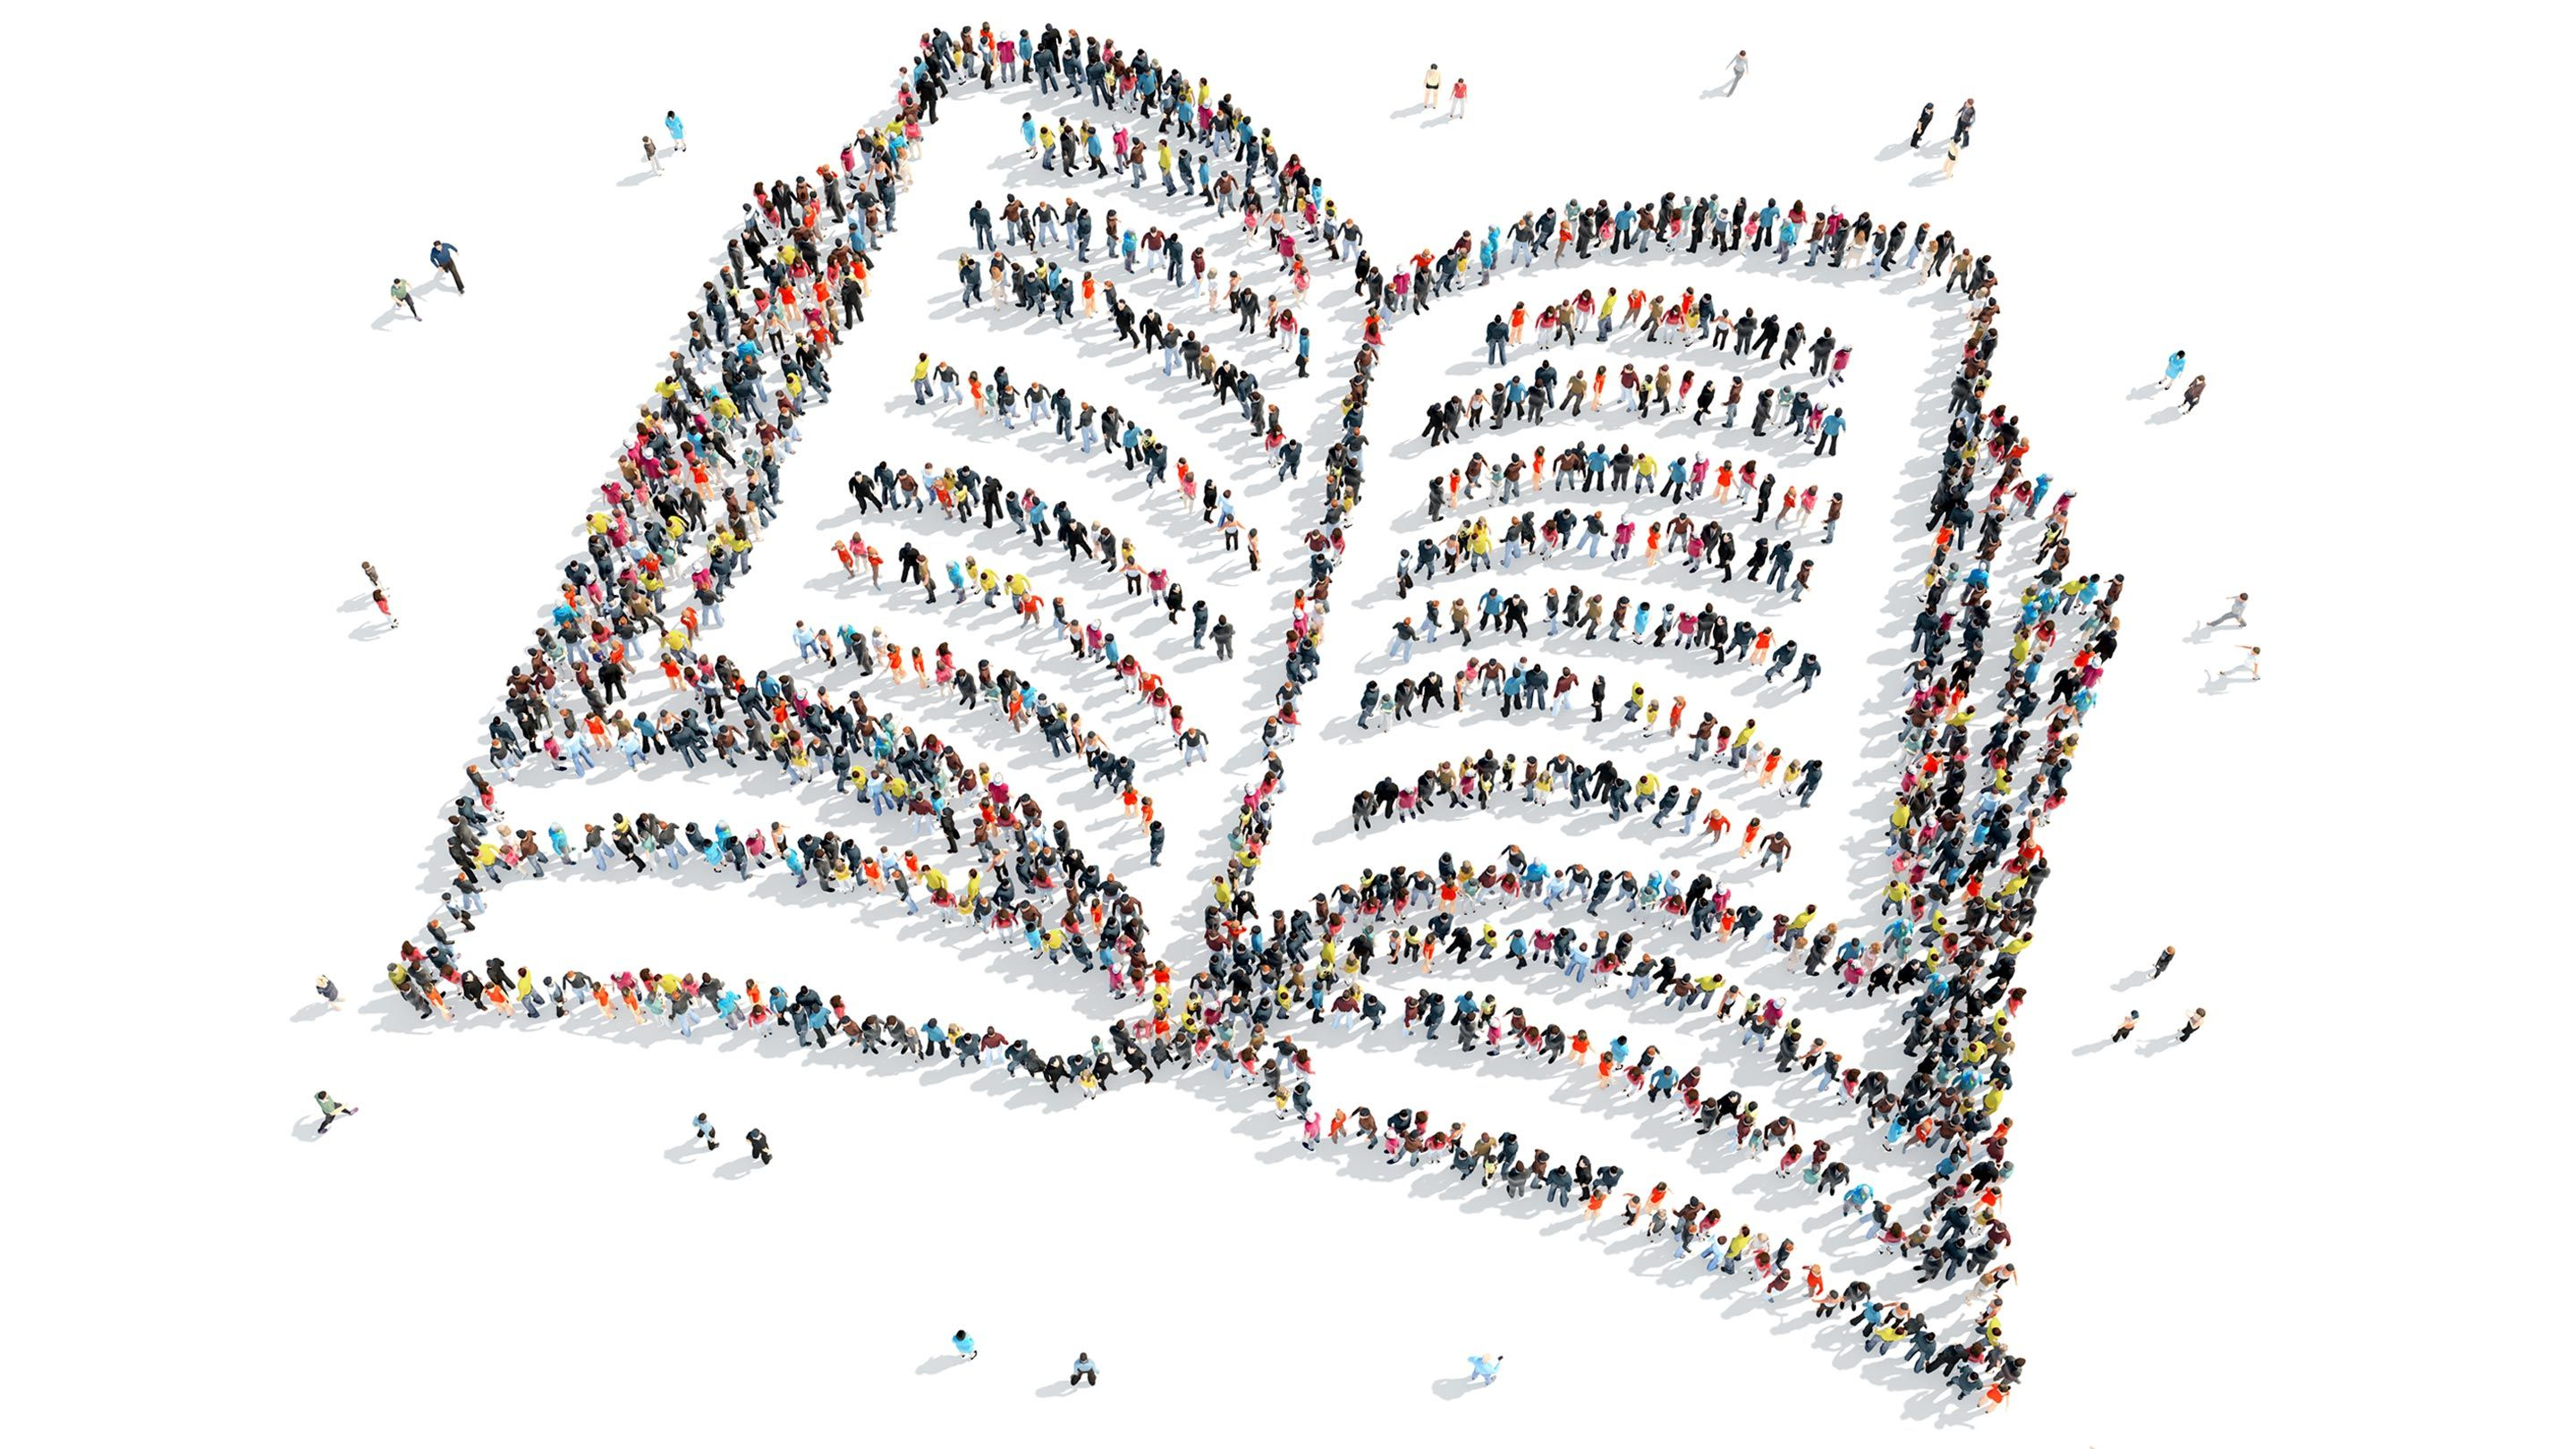 Illustration showing tiny drawn people standing in a pattern that suggests an open book